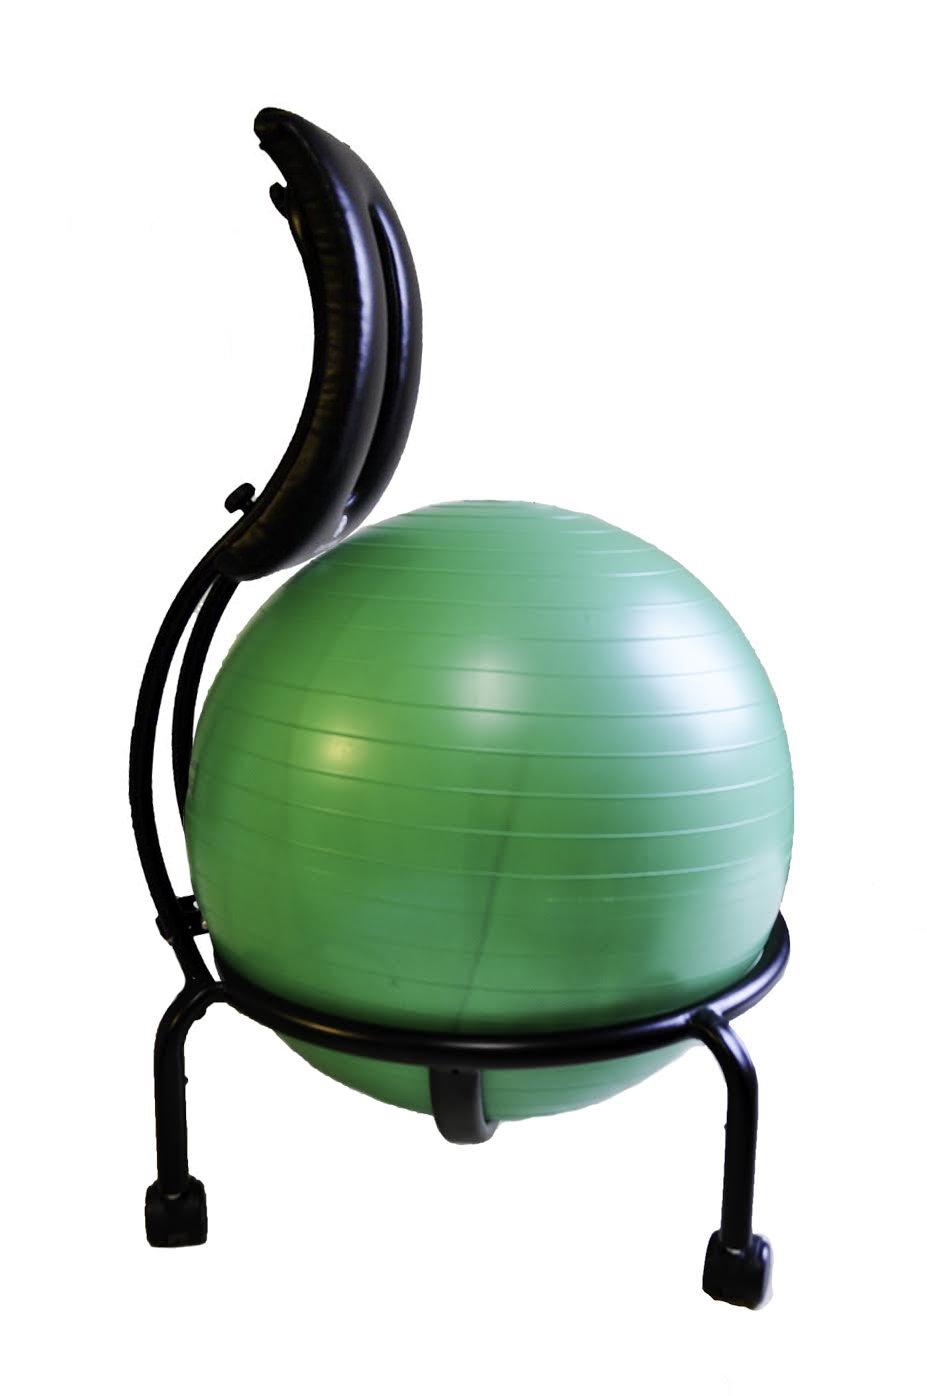 Health Mark Smart Chair Height-Adjustable Exercise Ball Chair, Green (BT20020)